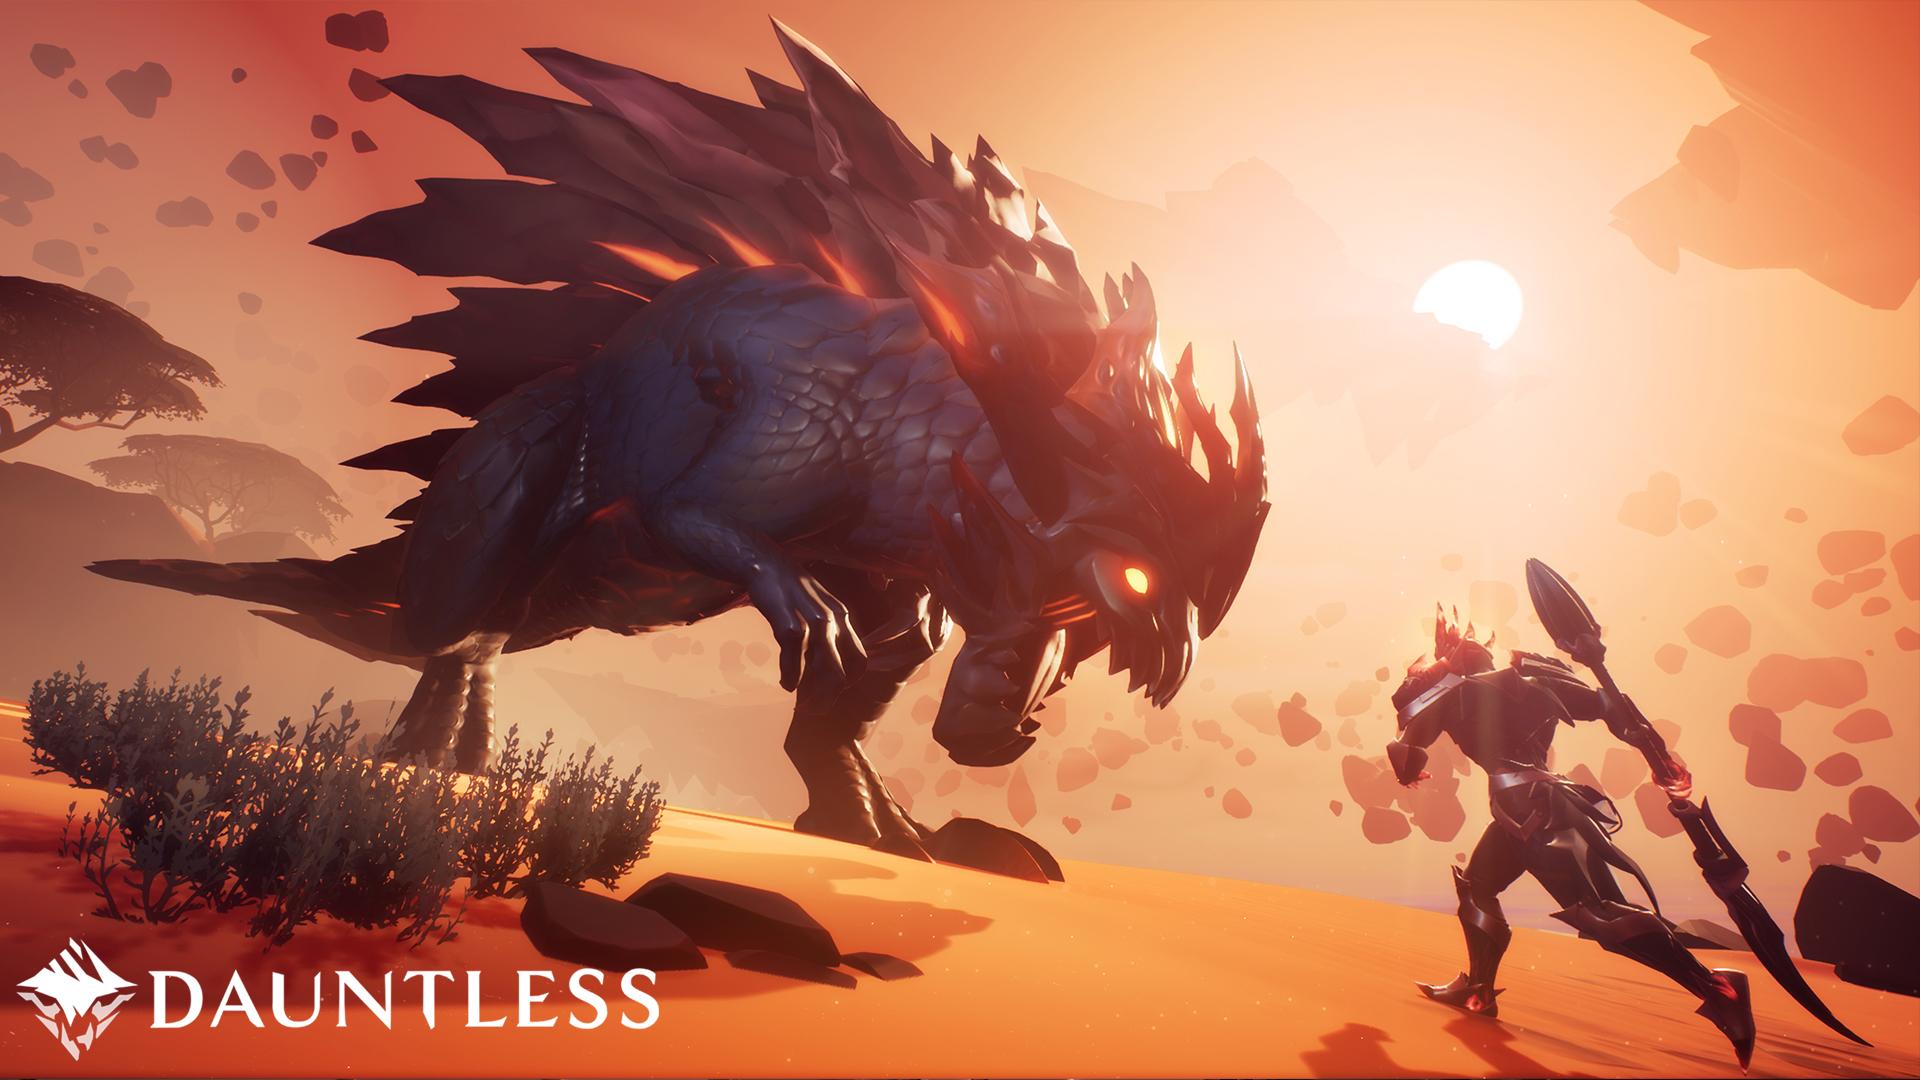 Dauntless launched into open beta